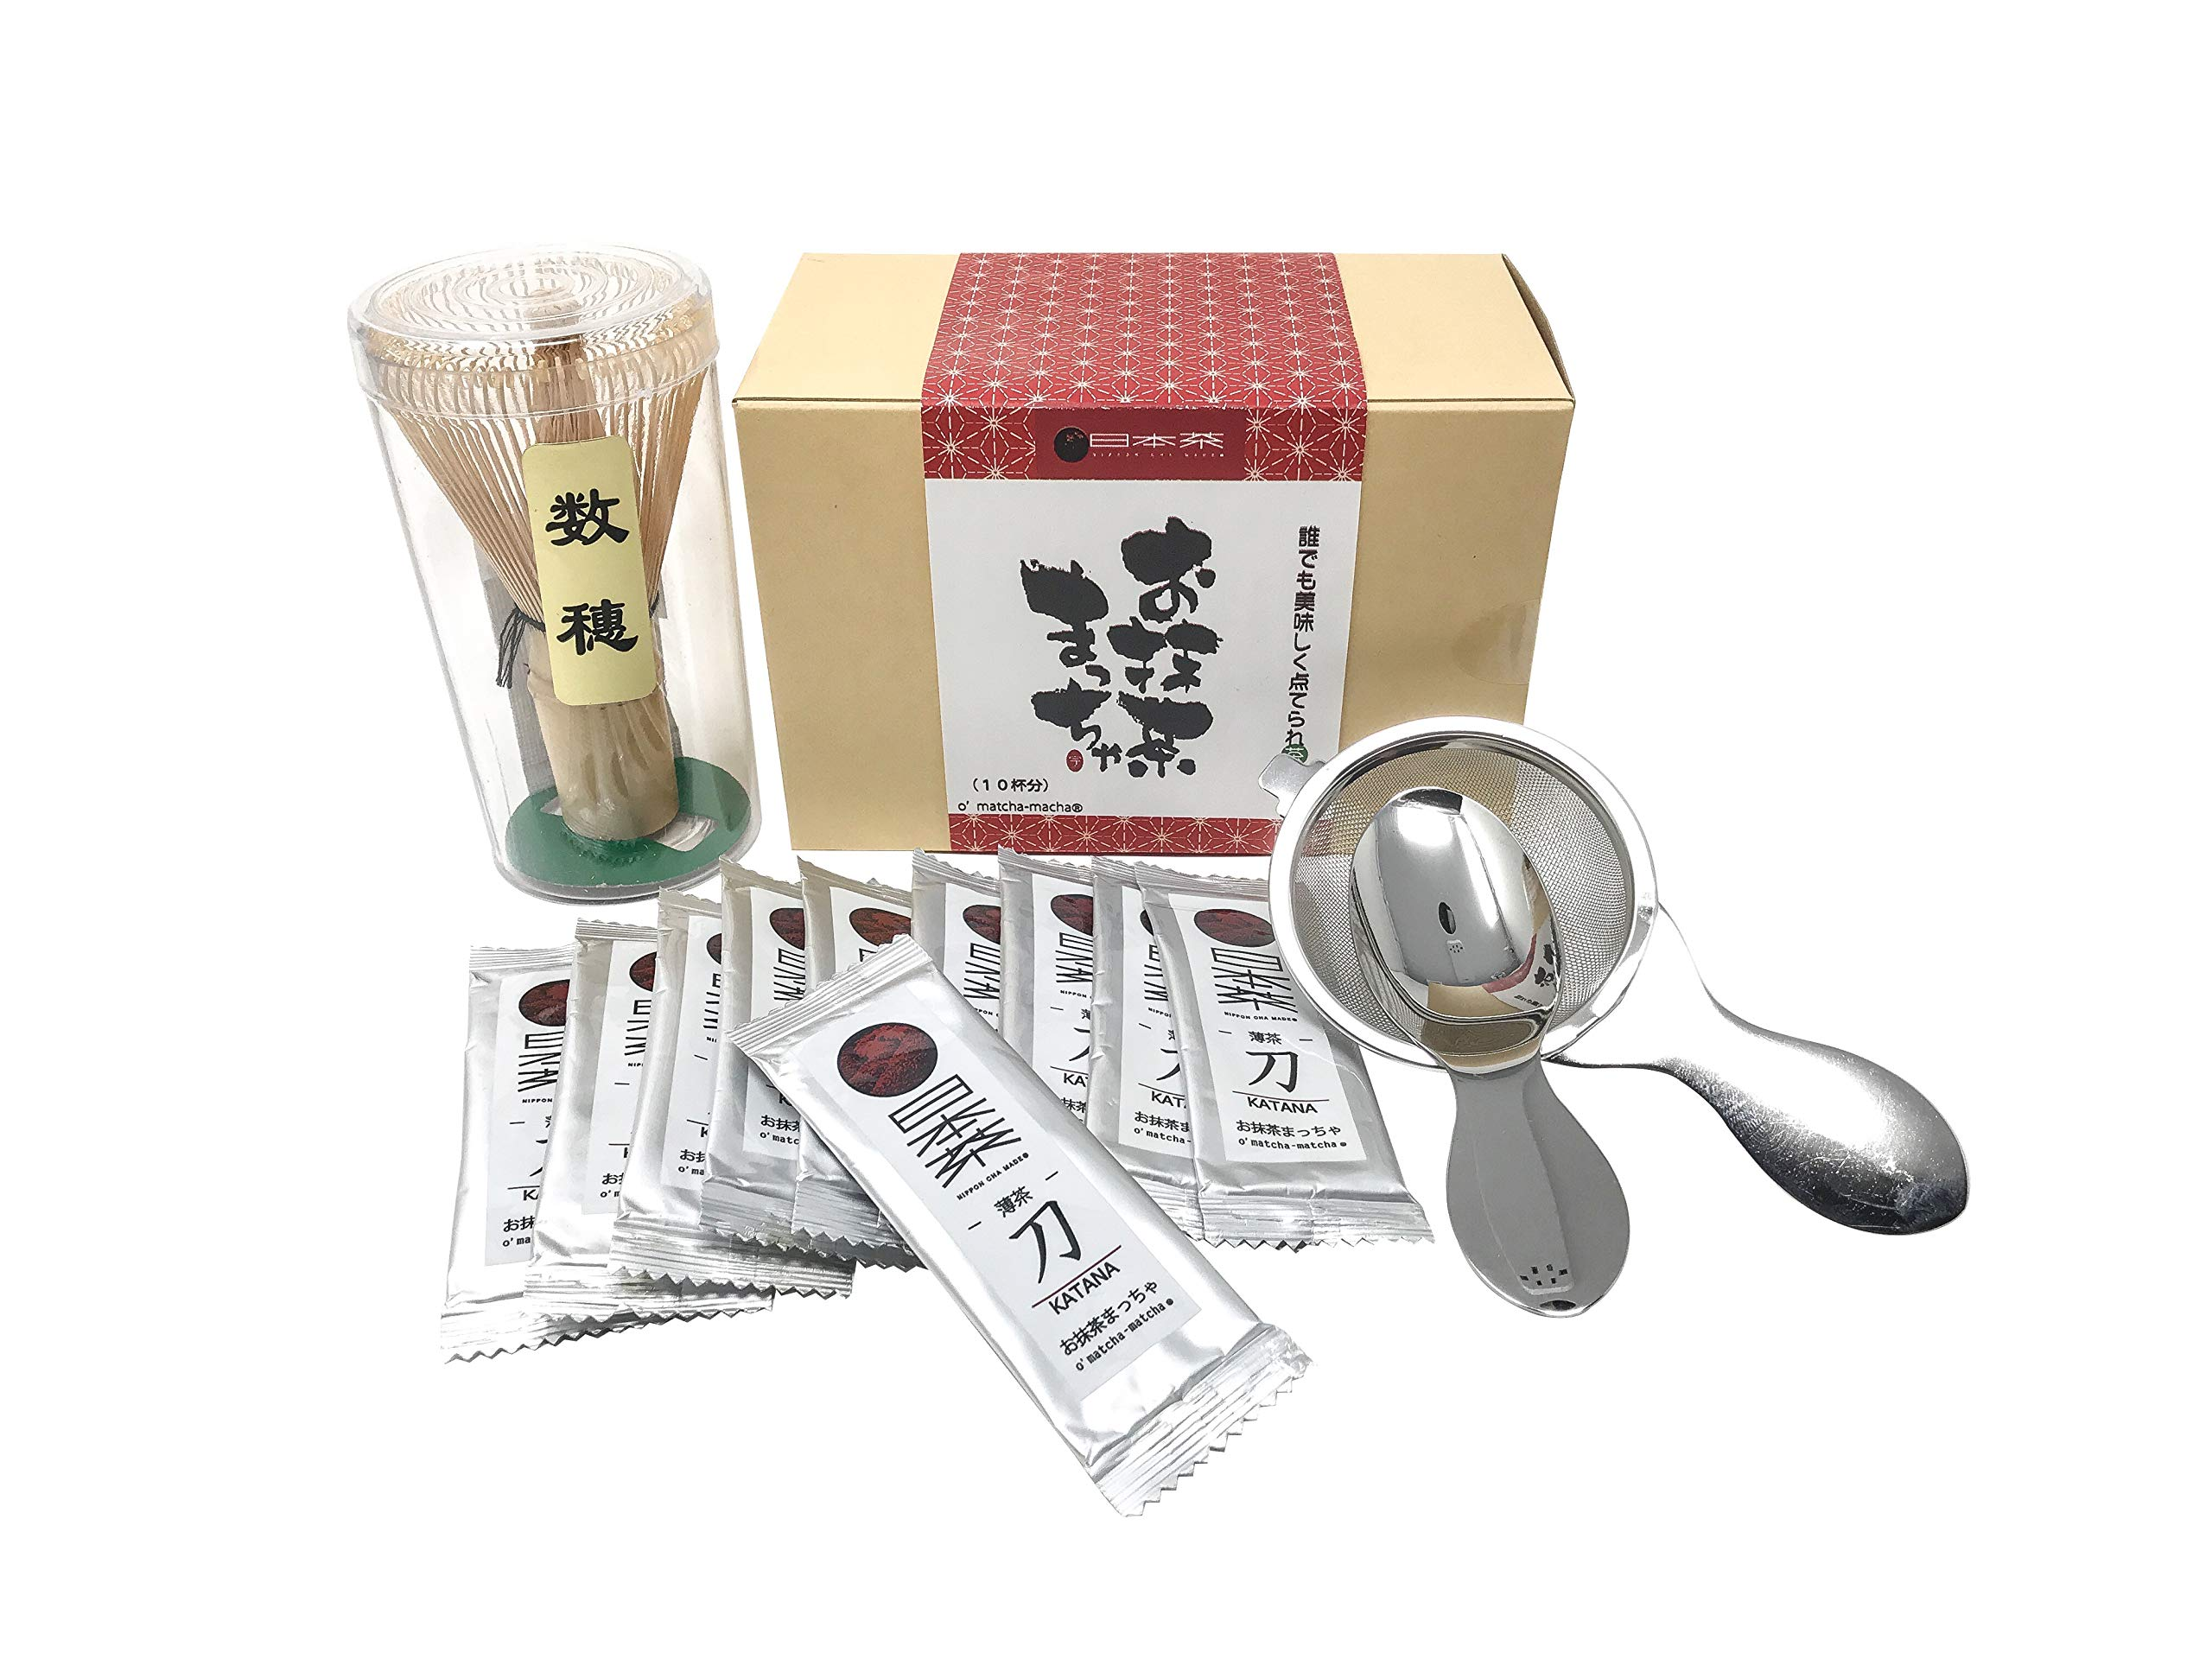 Nippon Cha - O'Matcha Matcha Set - Starter Matcha Kit - Ceremonial Matcha Tea - Matcha Whisk (Chasen) - Tea Spoon & Sifter, The Perfect Set to Prepare a Traditional Cup of Matcha - Made in Japan by NIPPON CHA MADE